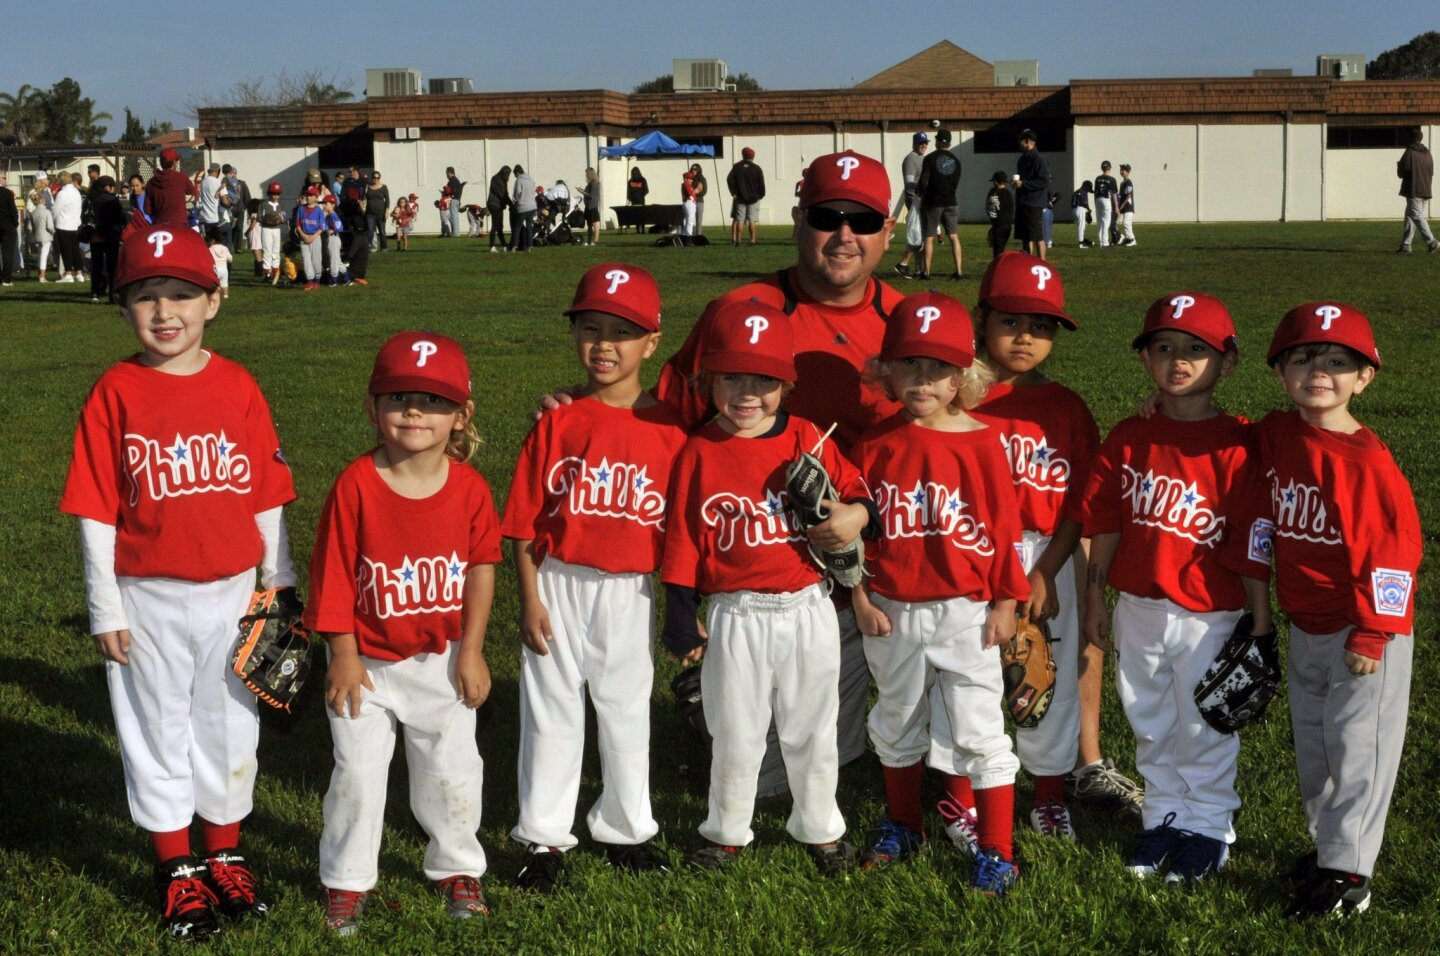 Manager Eric Wilburn with Phillies Kai, Parker, Liam, Jackson, Tosh, Lorett, Paul and Hudson